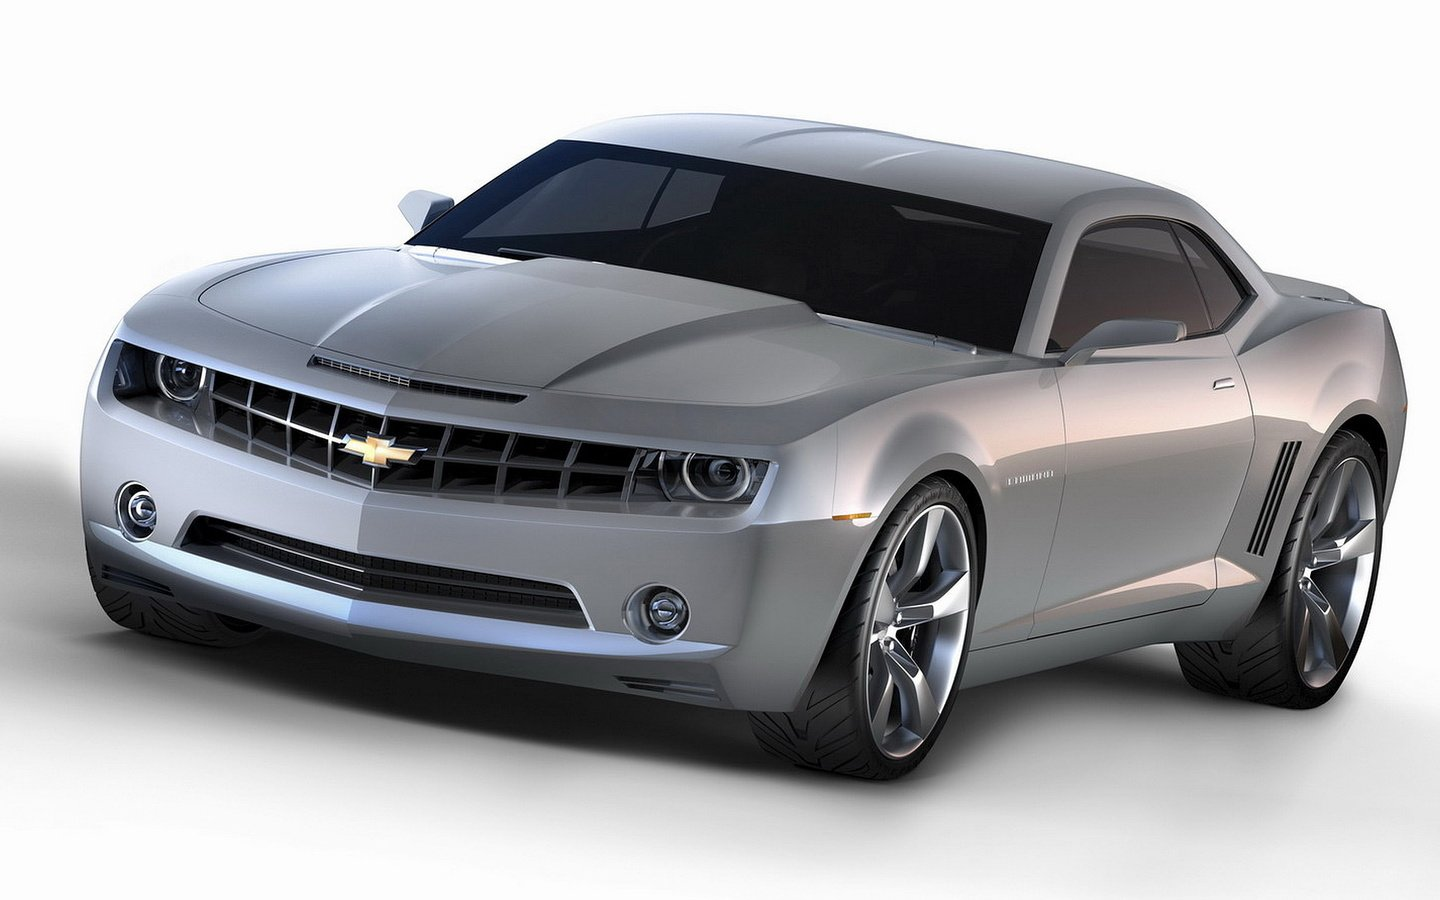 New History Of Cars Chevrolet Camaro History Of Cars On This Month